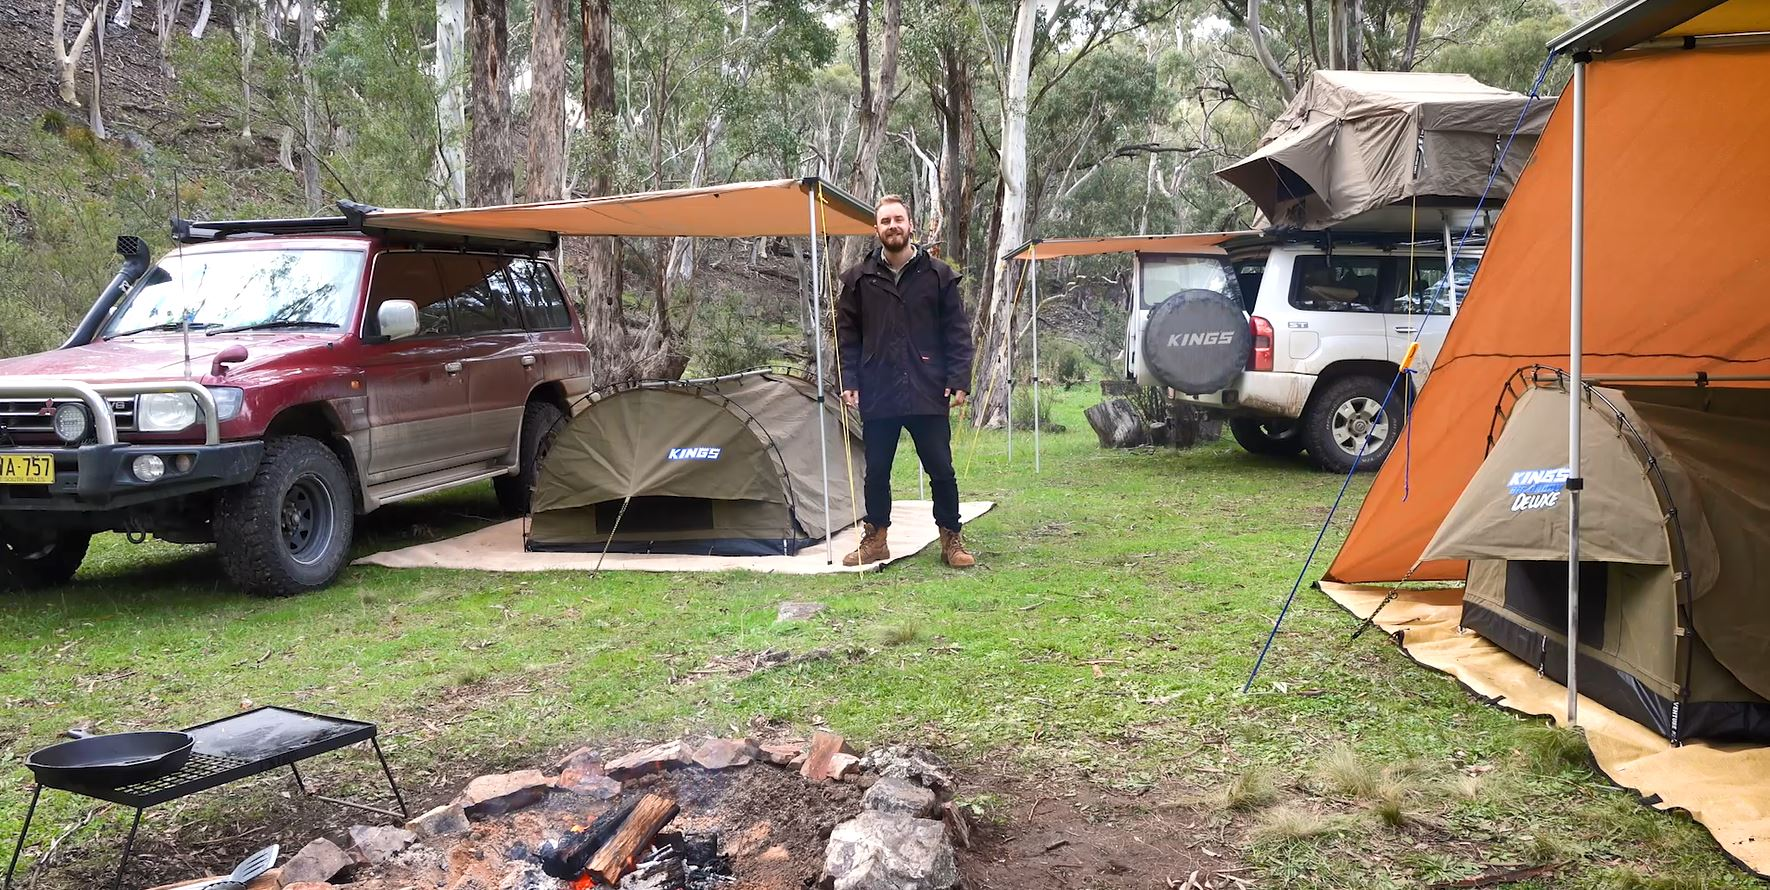 Set Up Your Awning when flying solo! - image Capture-113 on https://www.4wdsupacentre.com.au/news